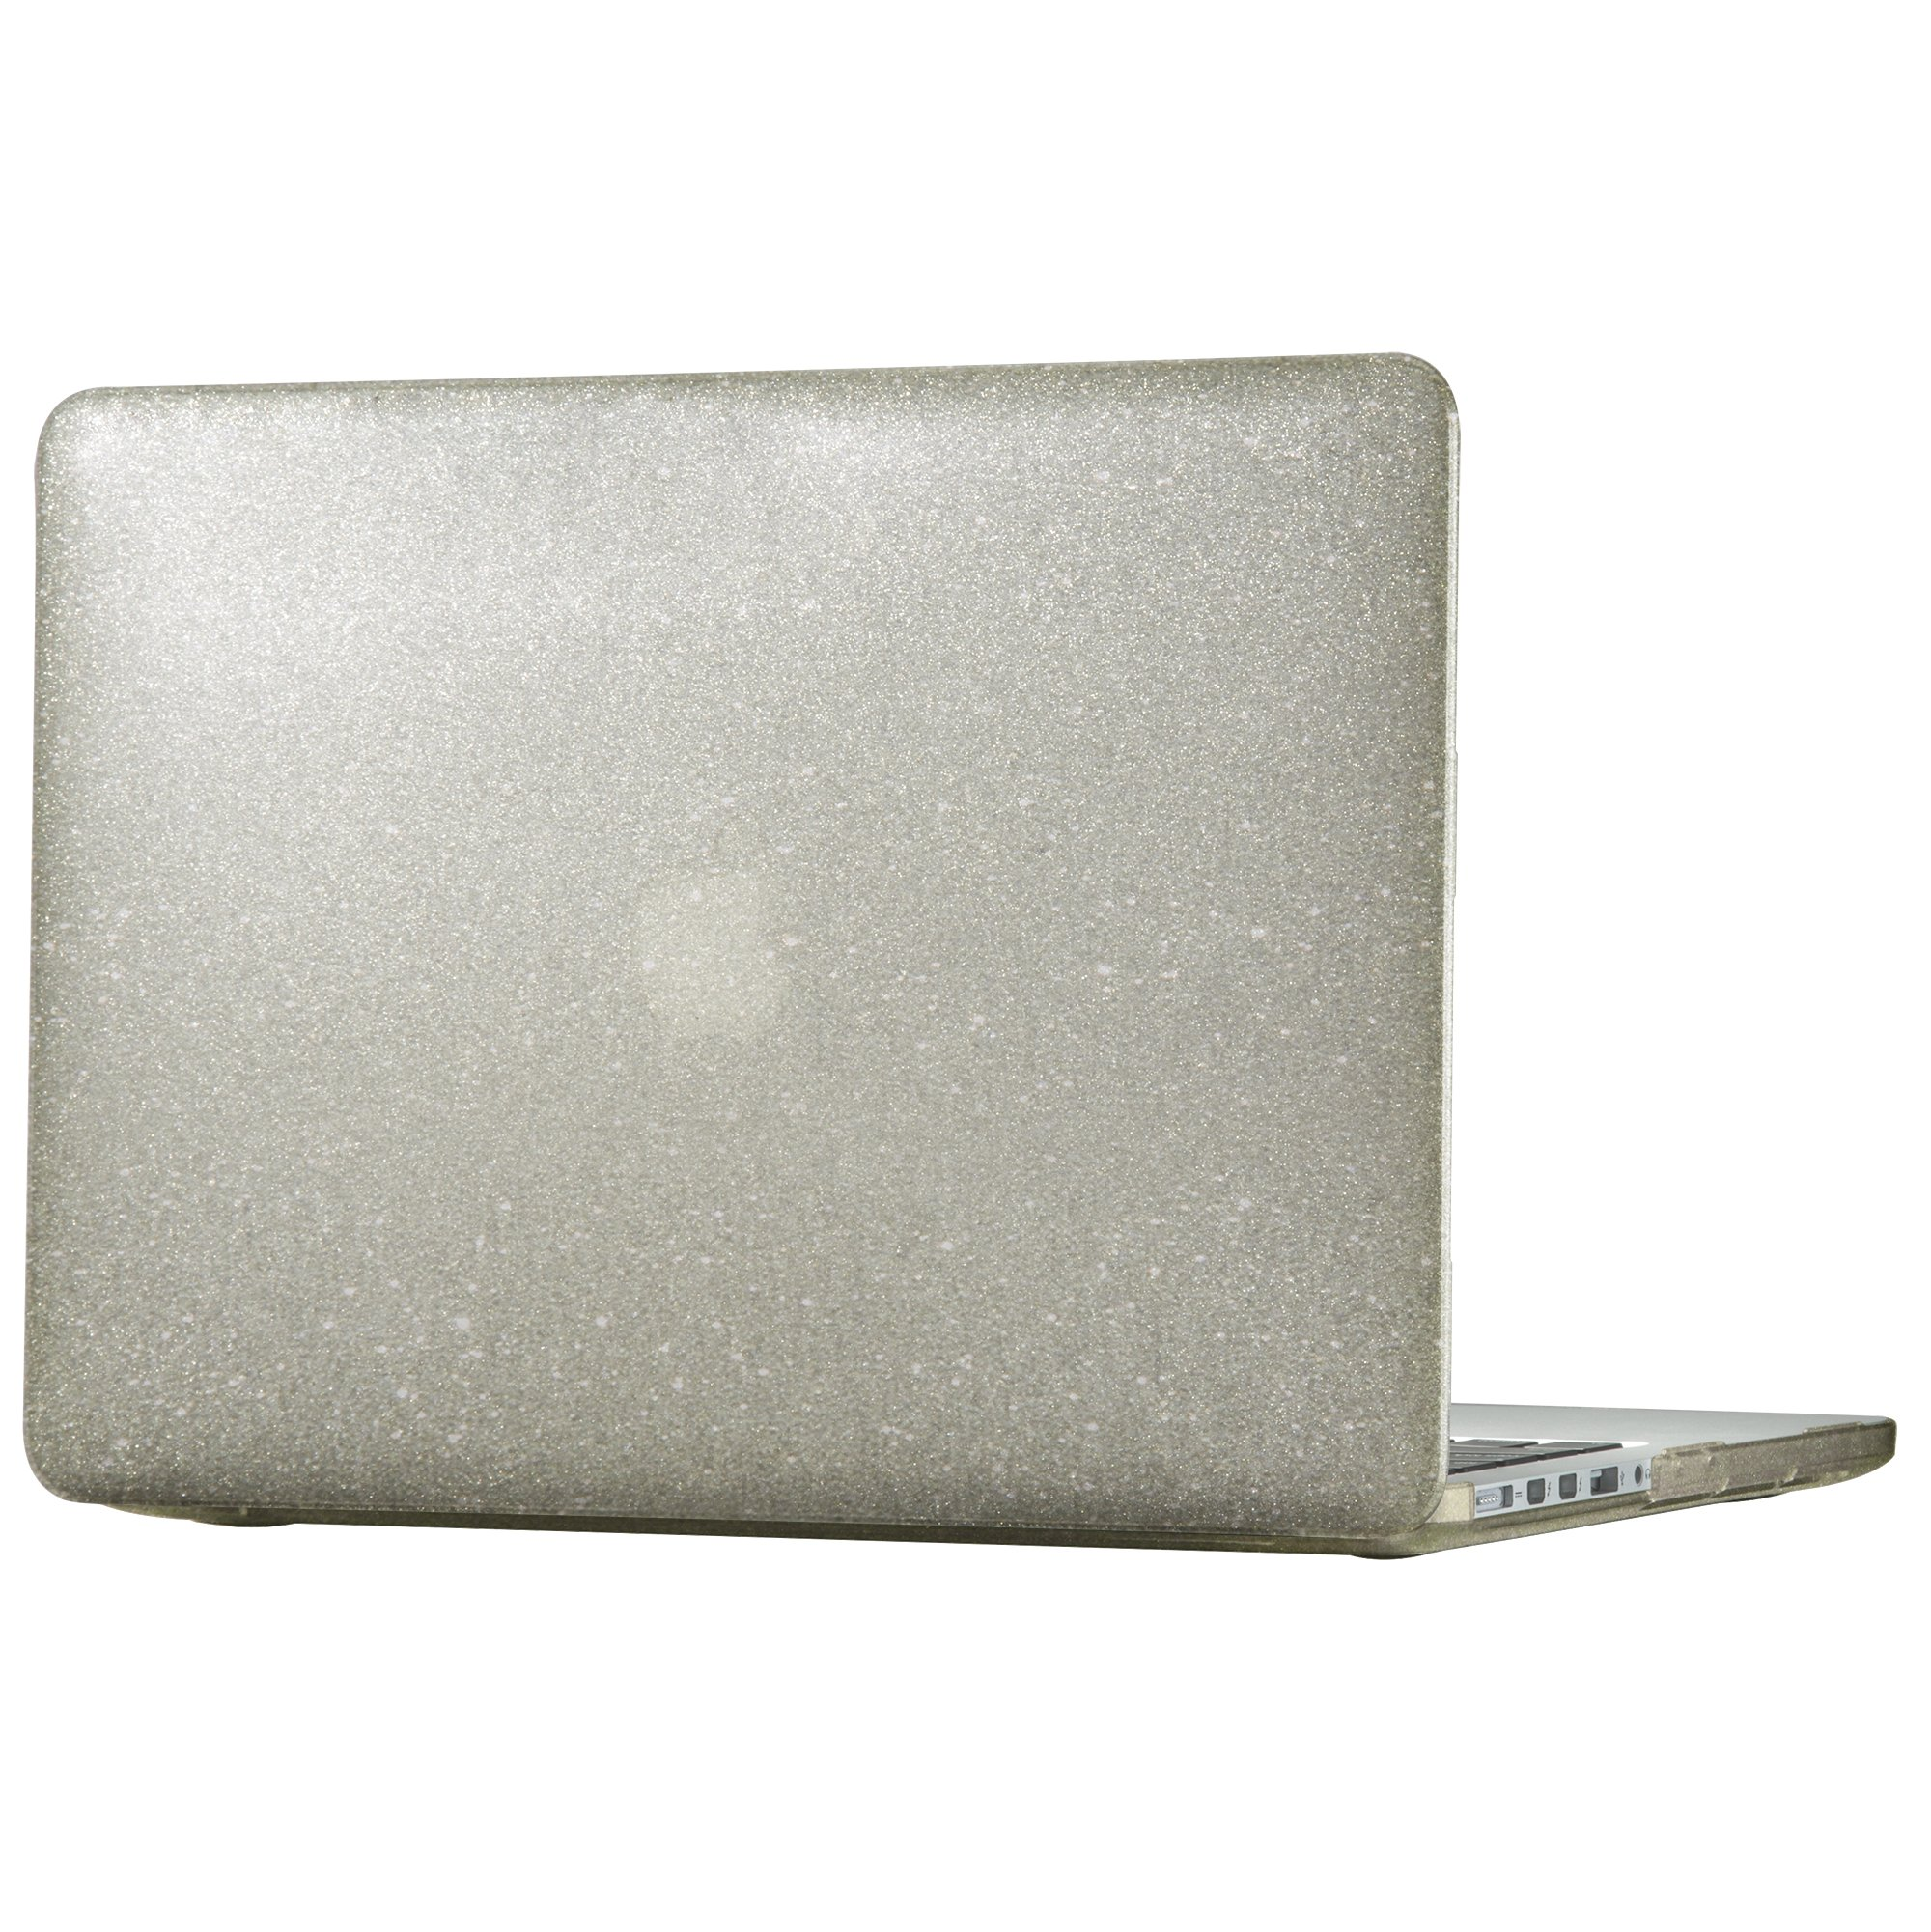 Speck Products 86400-5636 SmartShell Case for MacBook Pro 13'' with Retina Display, Clear with Gold Glitter by Speck